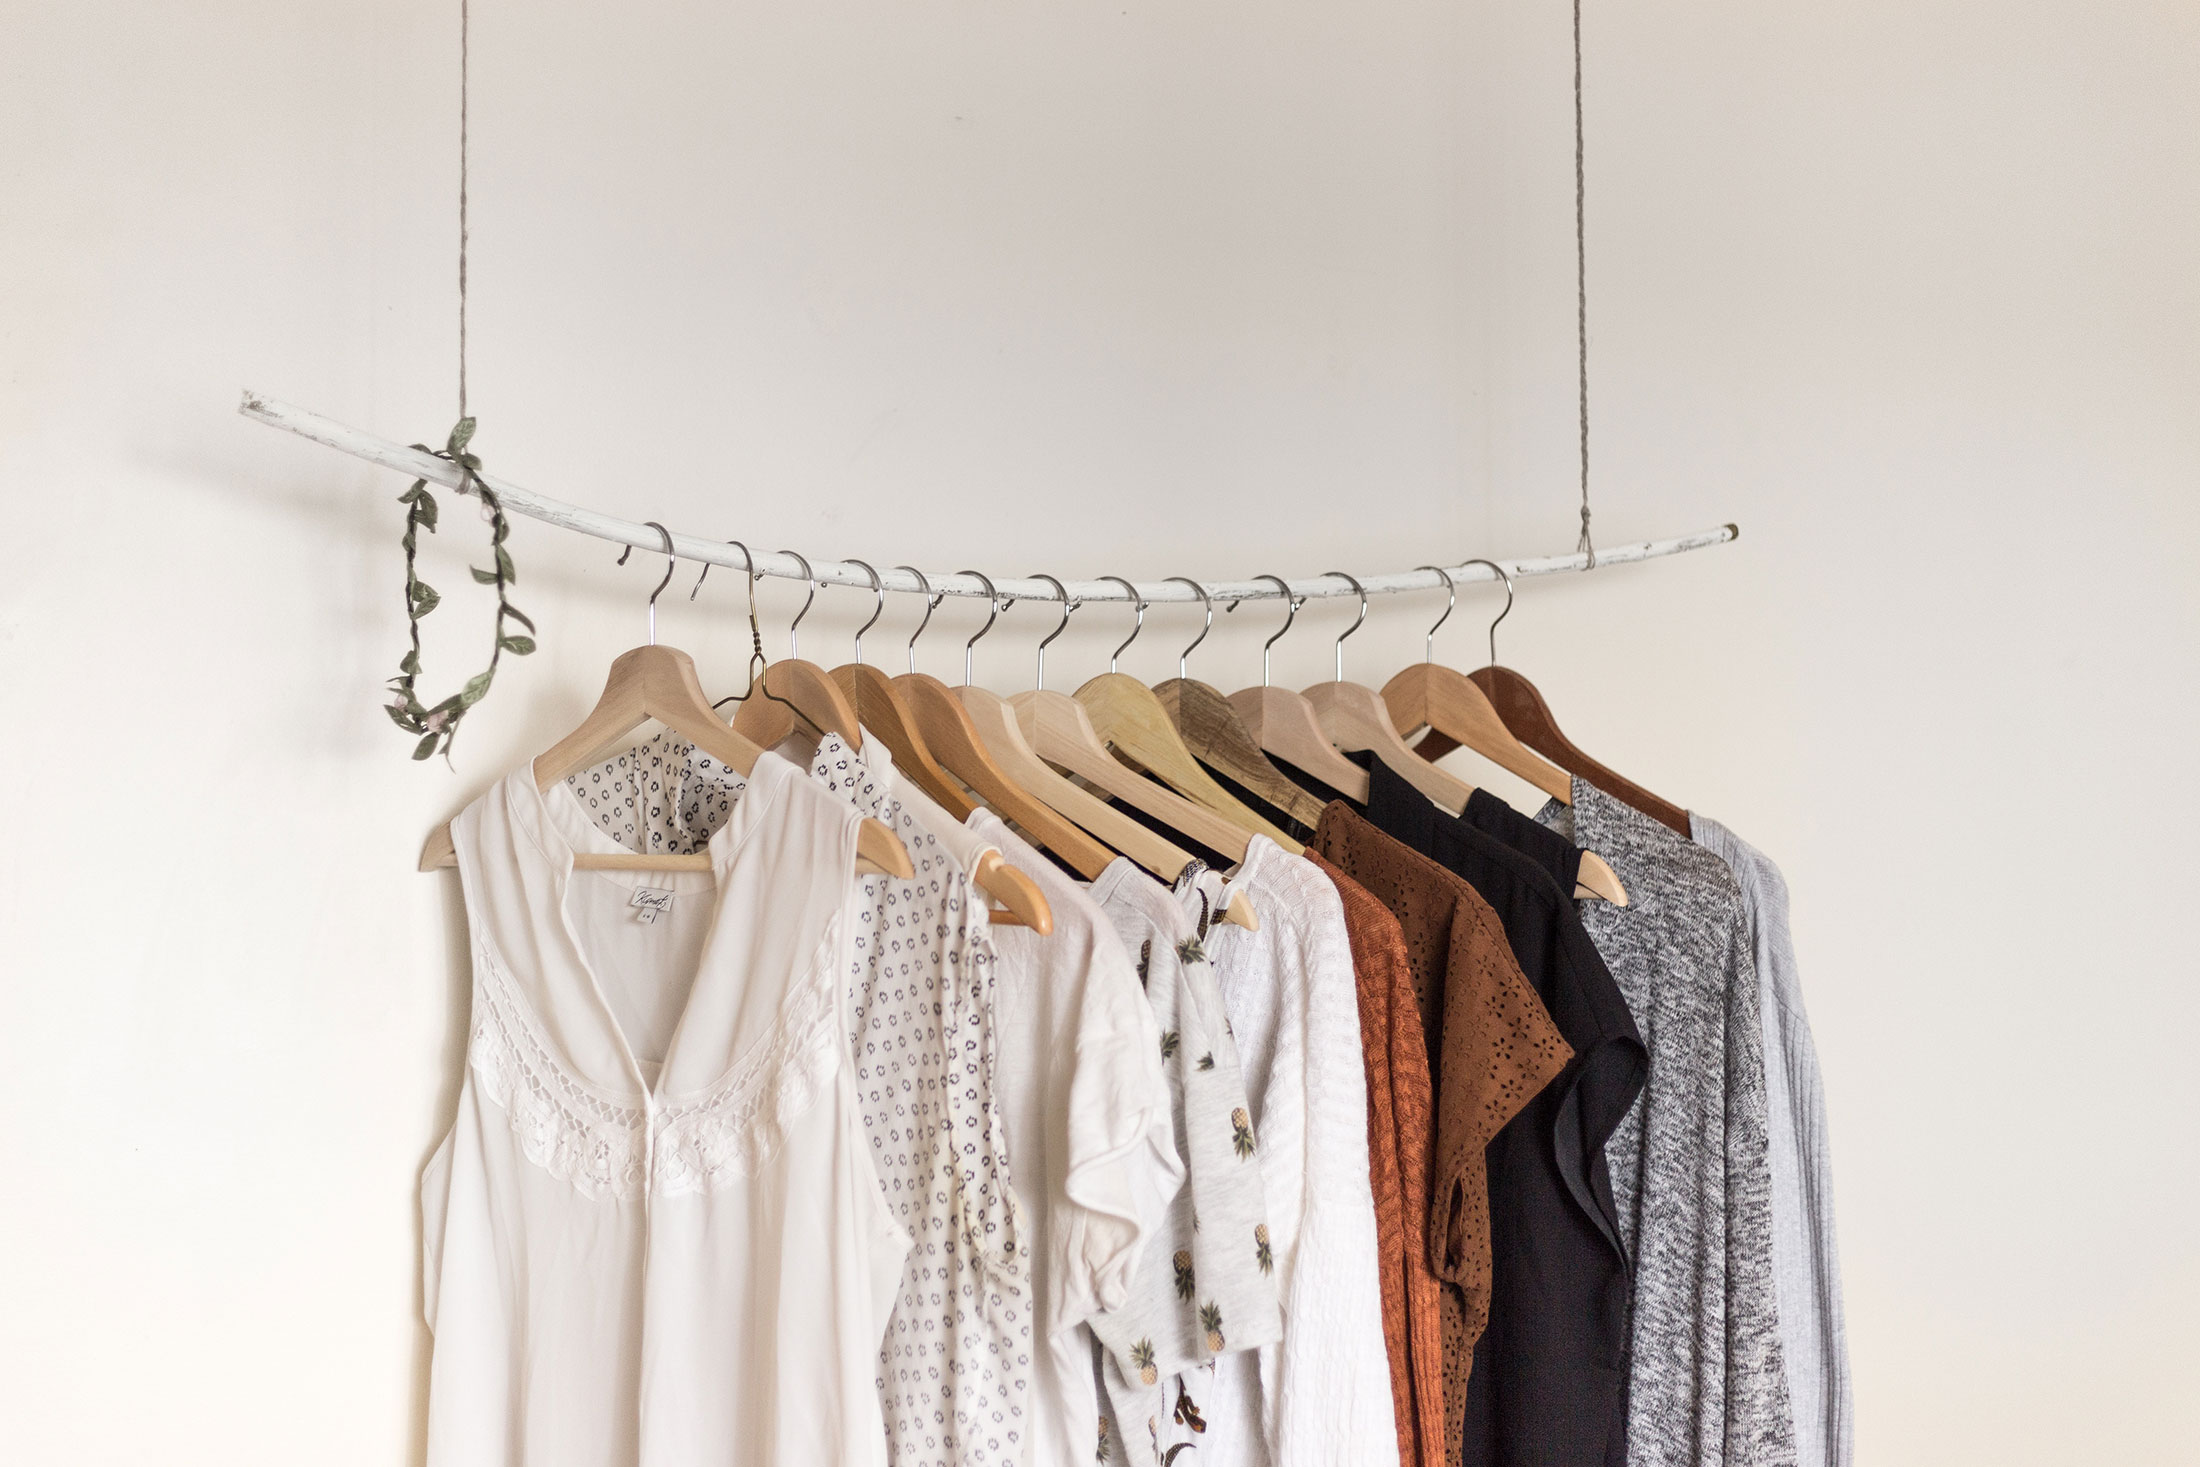 Les-Naly-Women-work-Career-clothes-lifestyle-organizing.jpg